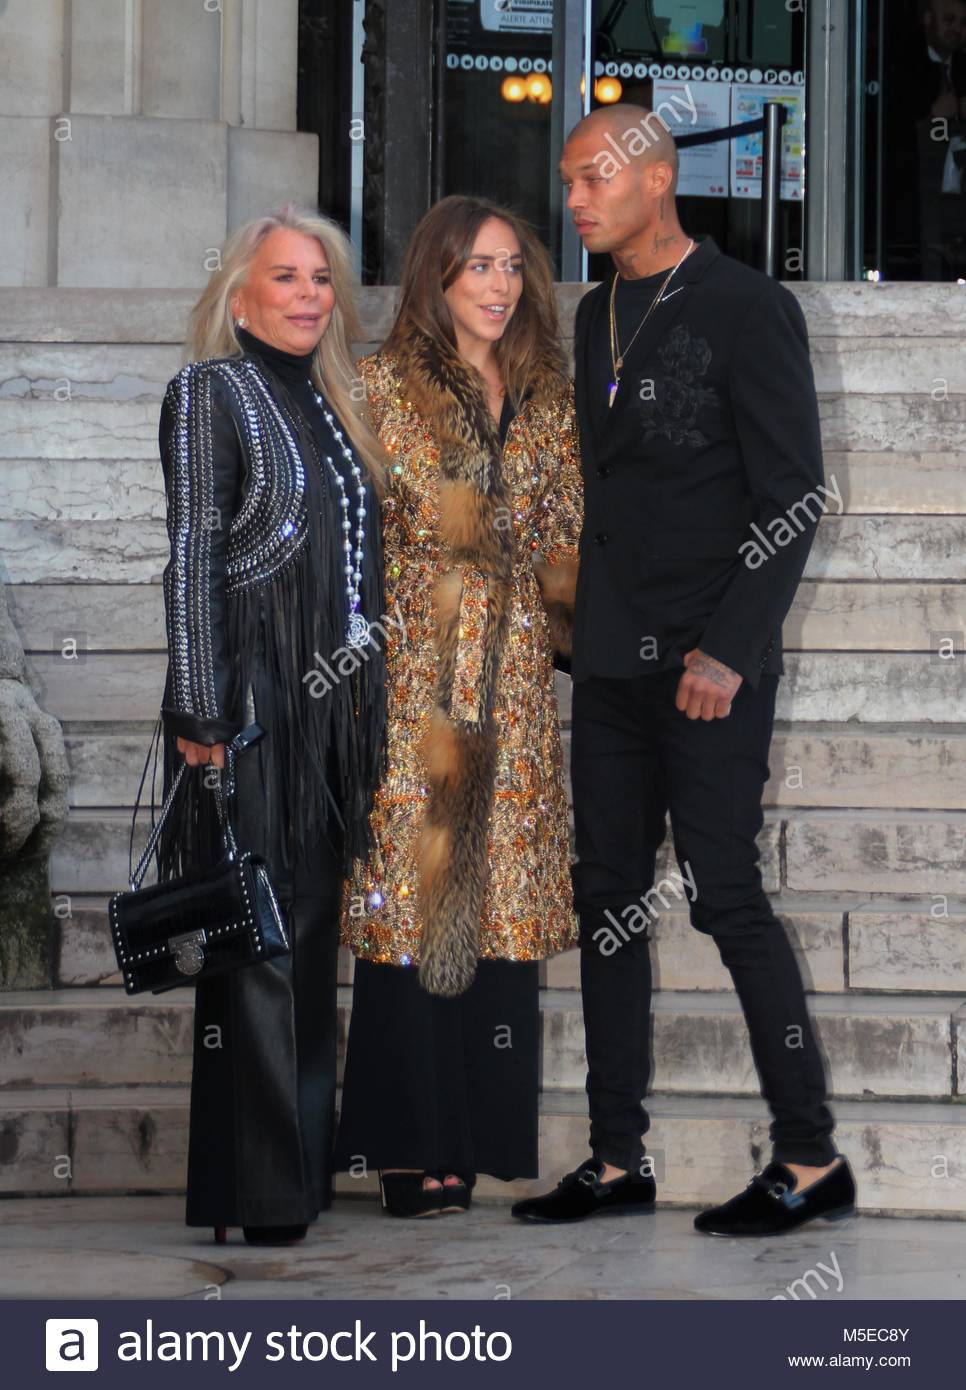 Paris Fashion Week Haute Couture - Ralph & Russo show - Arrivals  Featuring: Chloe Green, Jeremy Meeks, Tina - Stock Image